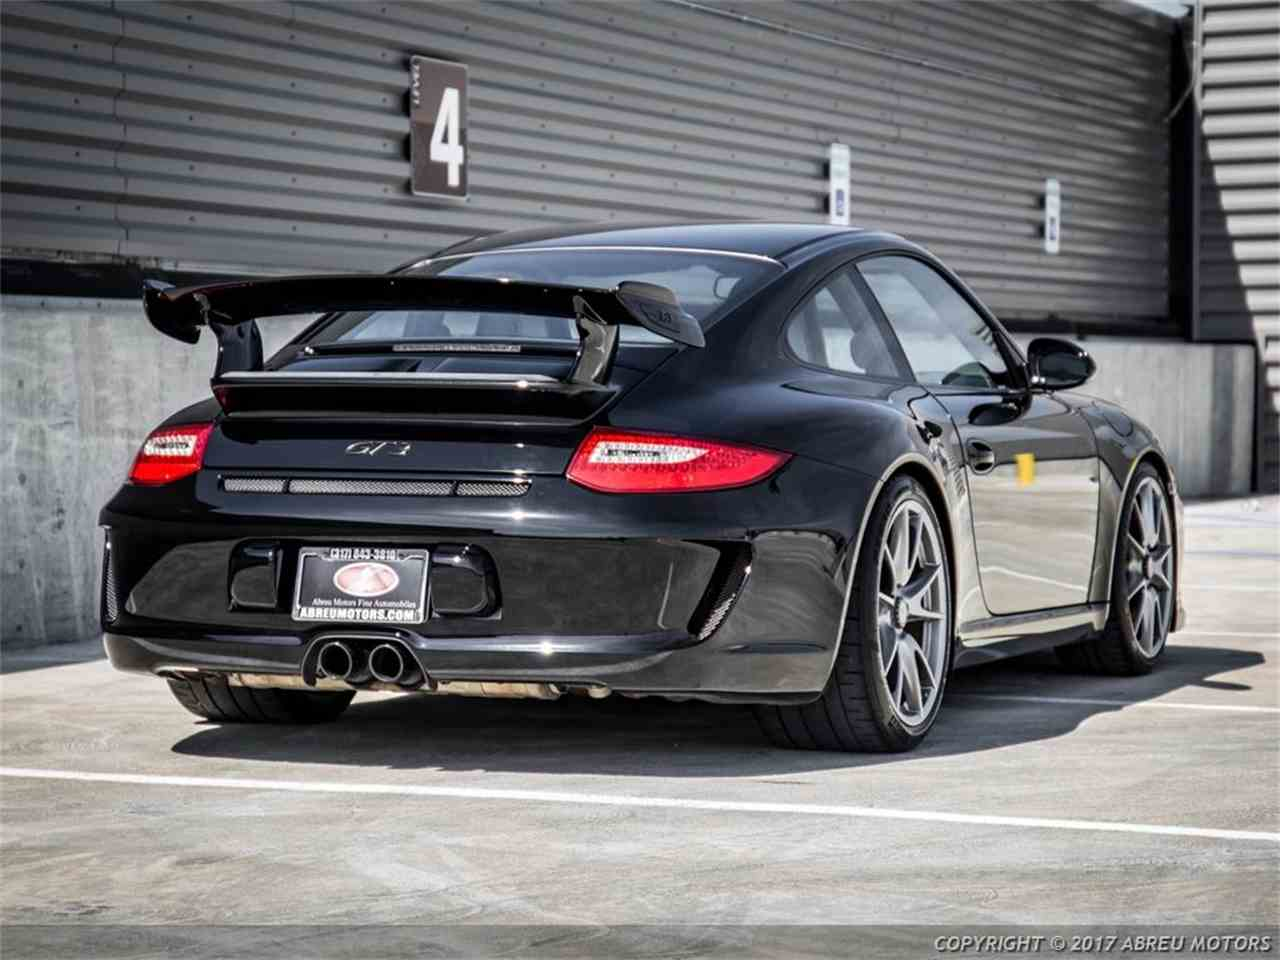 Large Picture of 2011 911 GT3 located in Carmel Indiana Auction Vehicle - L3QR